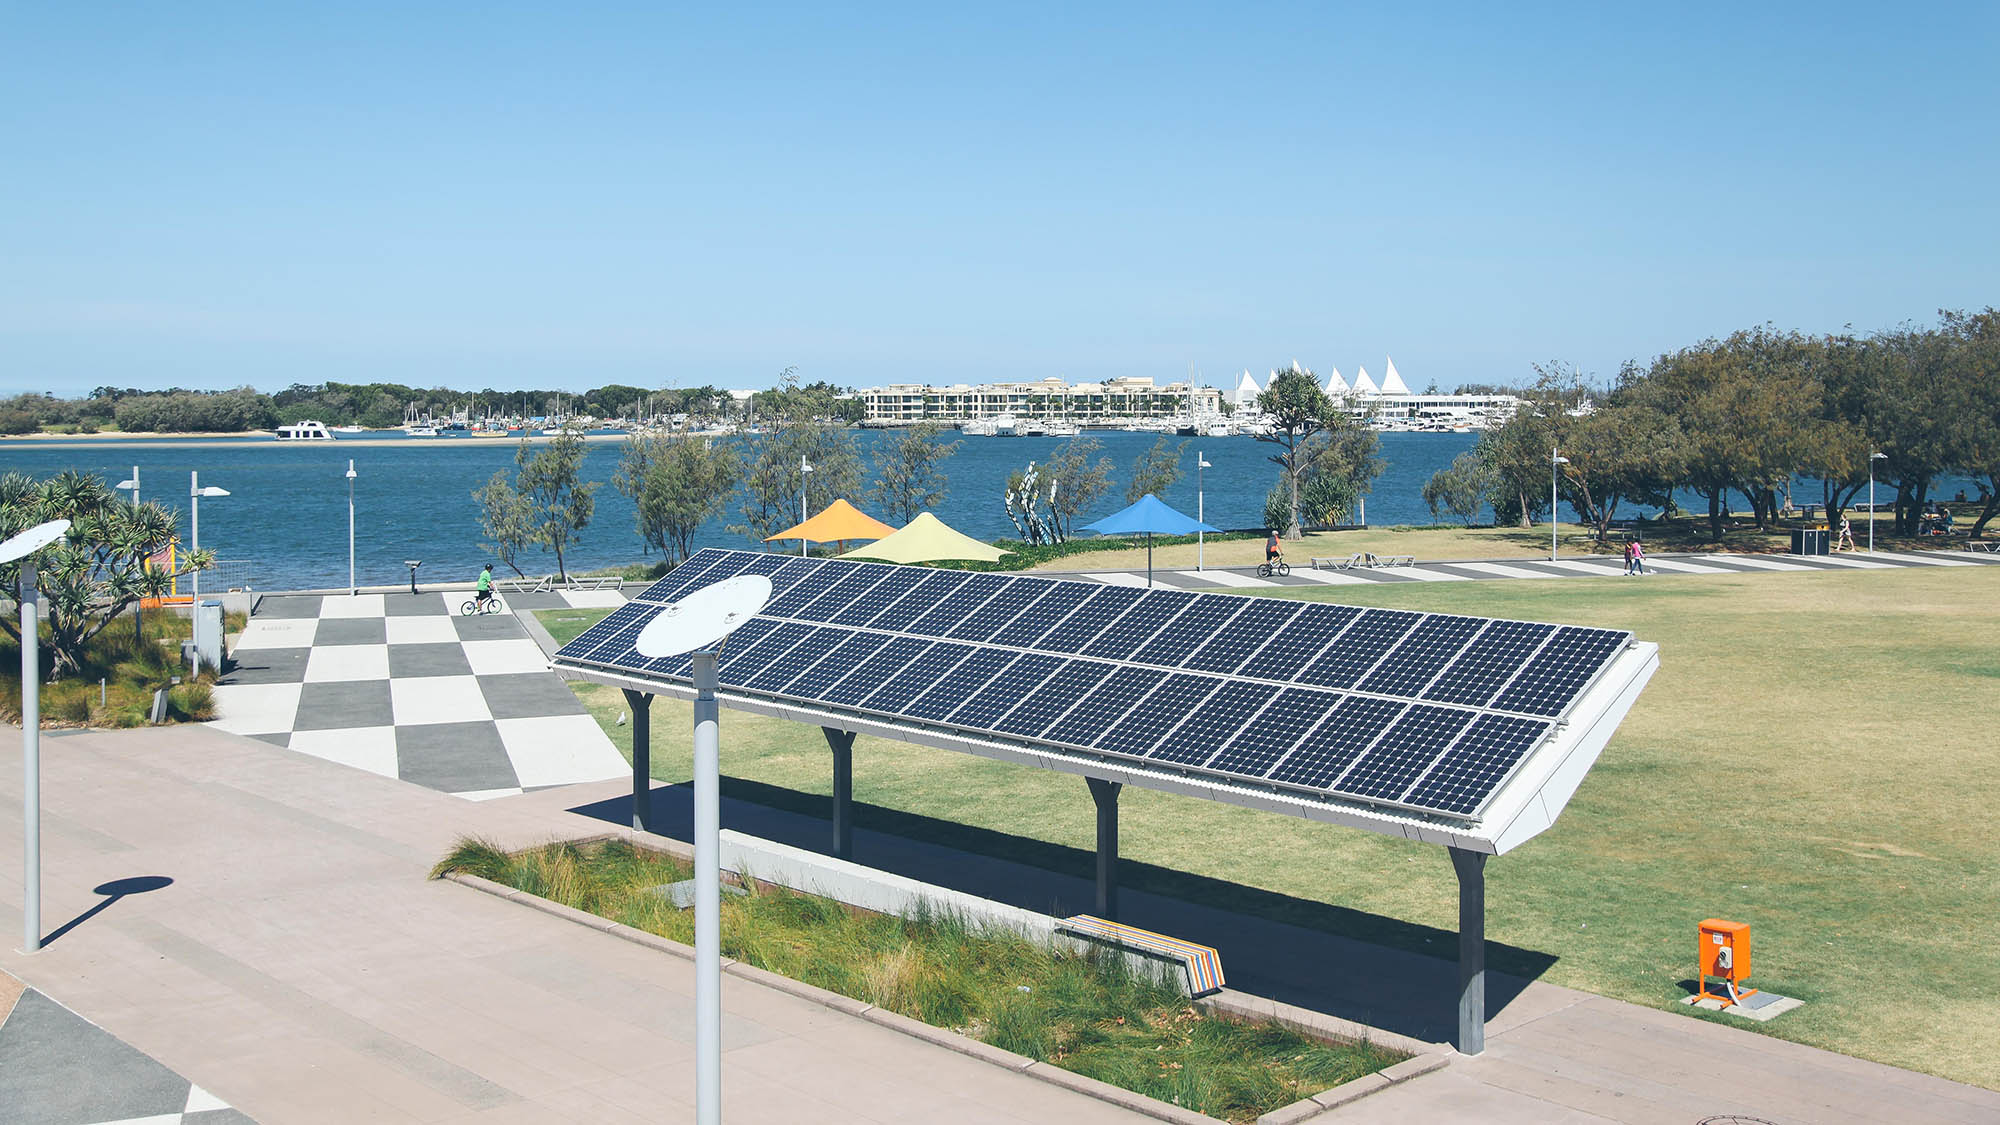 Located in Southport, the Broadwater Parklands is a newly developed park linking the CBD to the Broadwater and is home to playgrounds, rock pools, swimming areas and BBQ facilities.